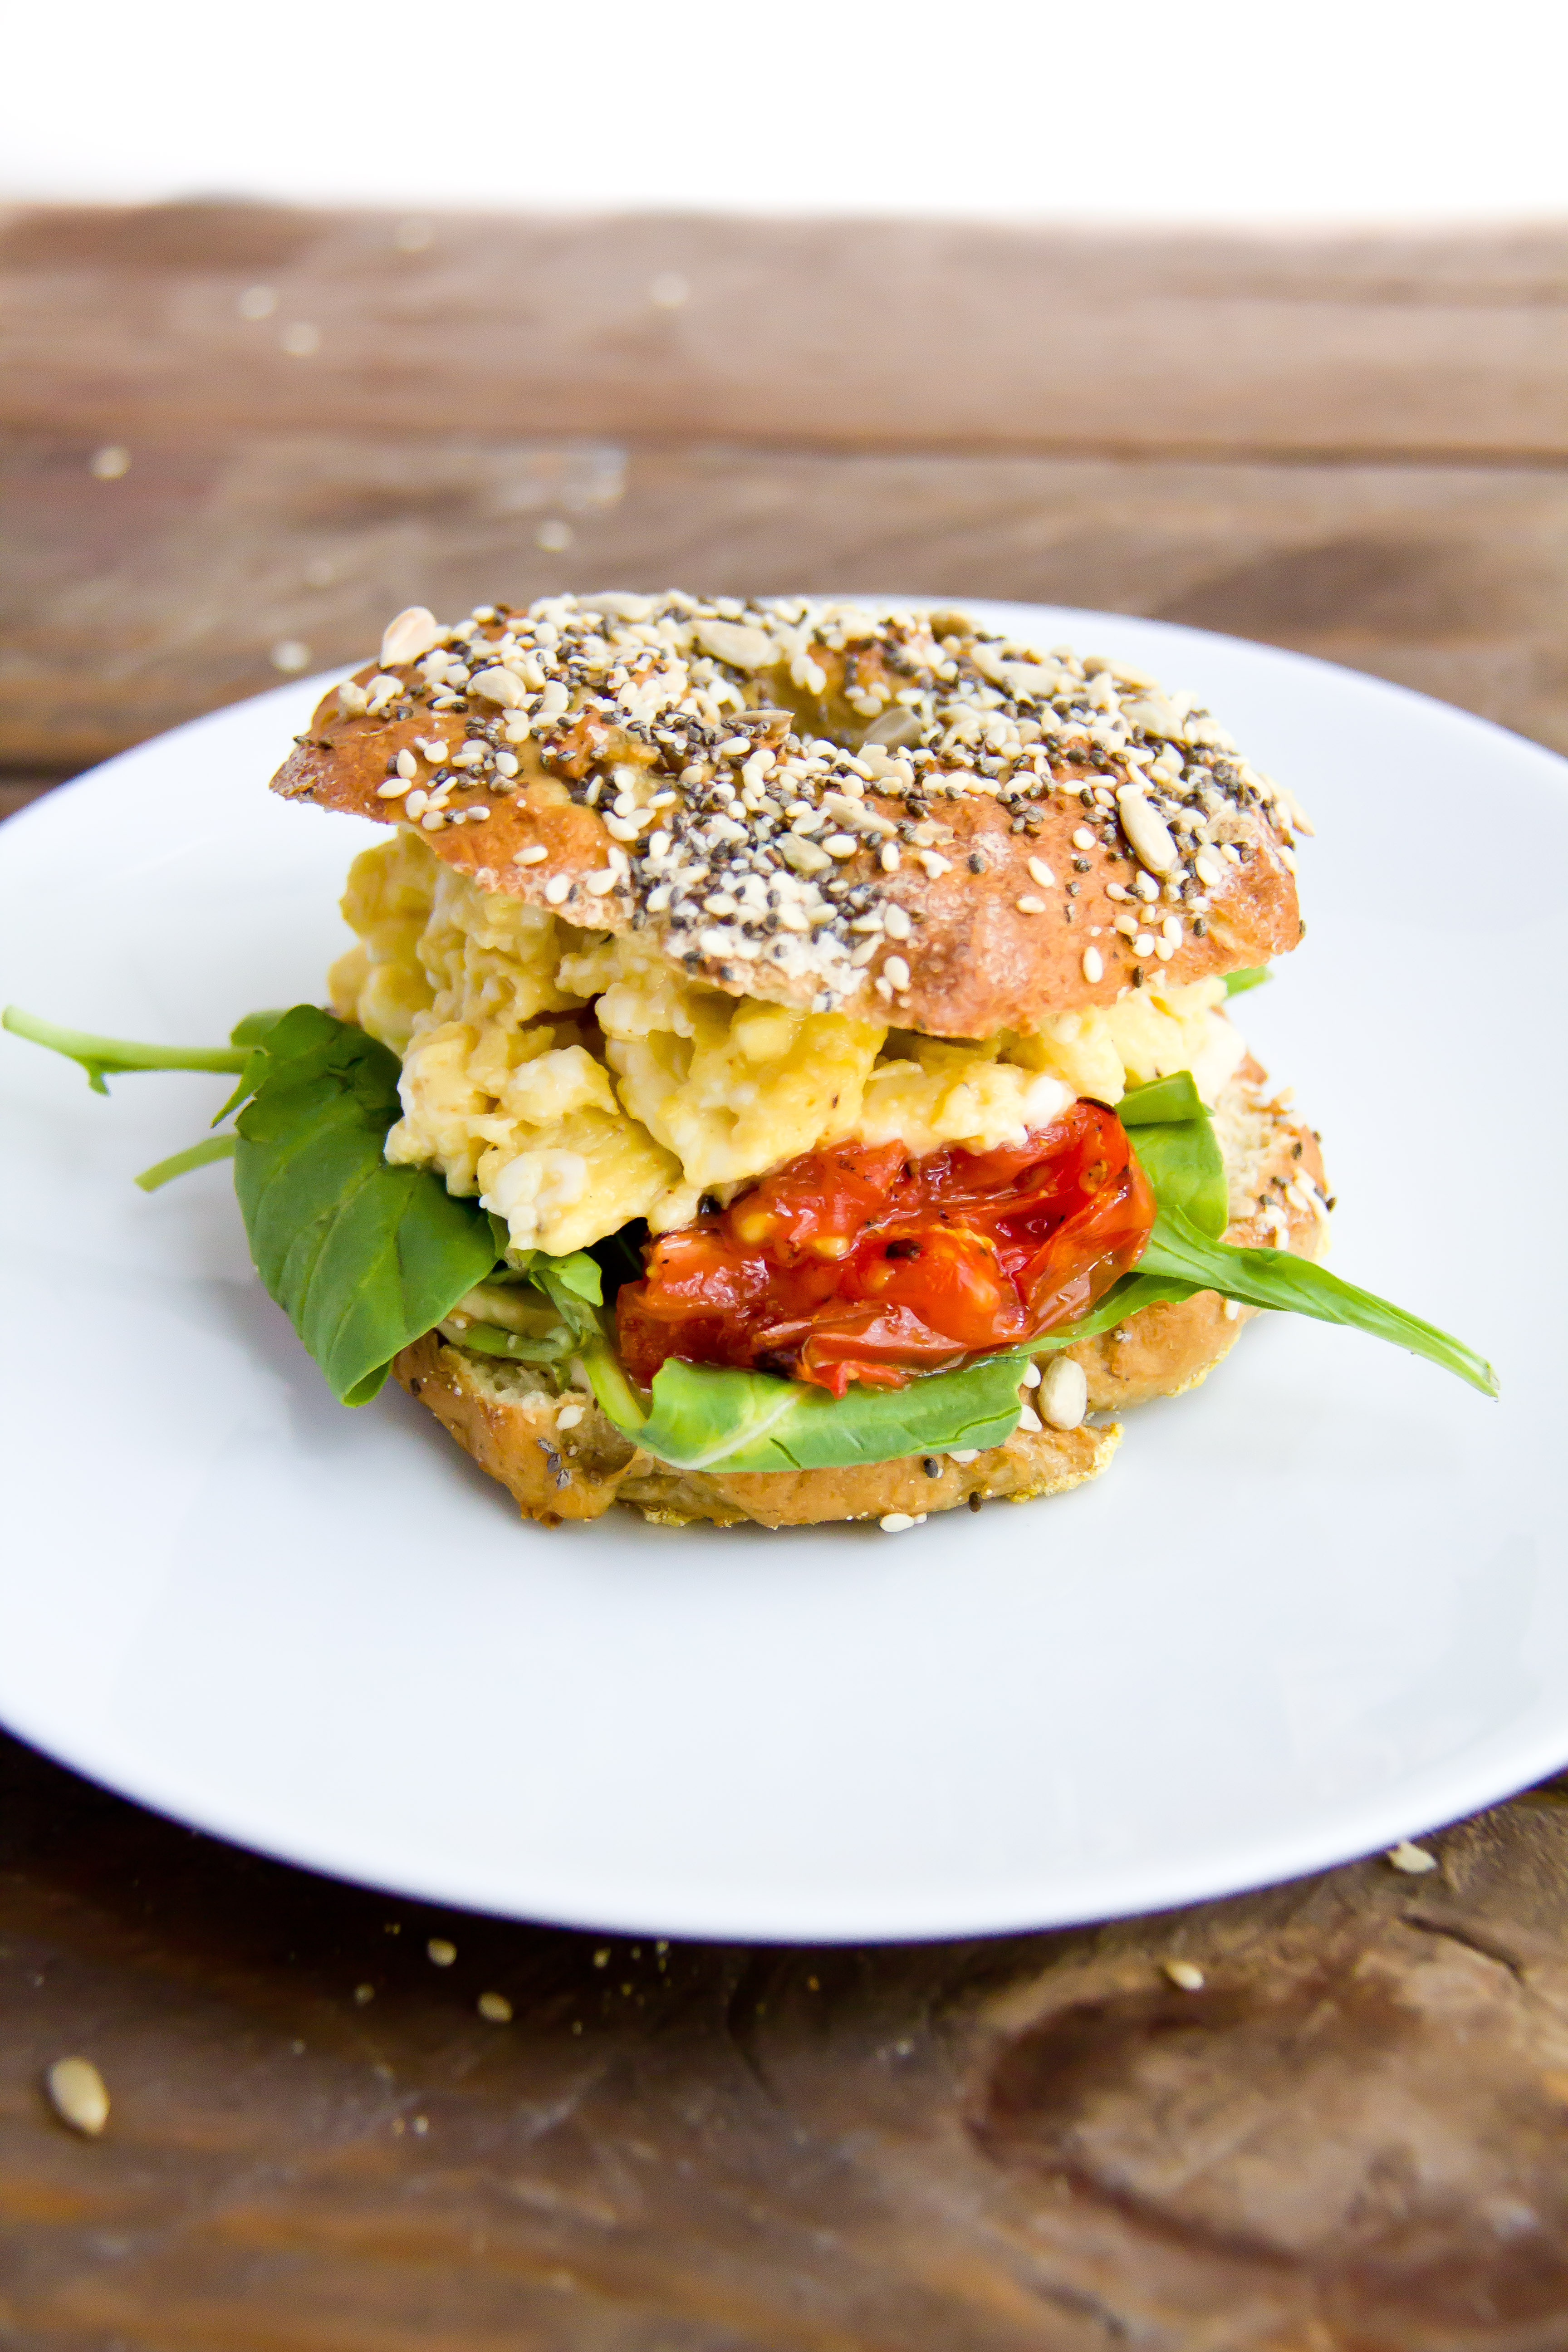 Gluten Free Pretzel Bagels with Chia, Sesame & Sunflower Seeds